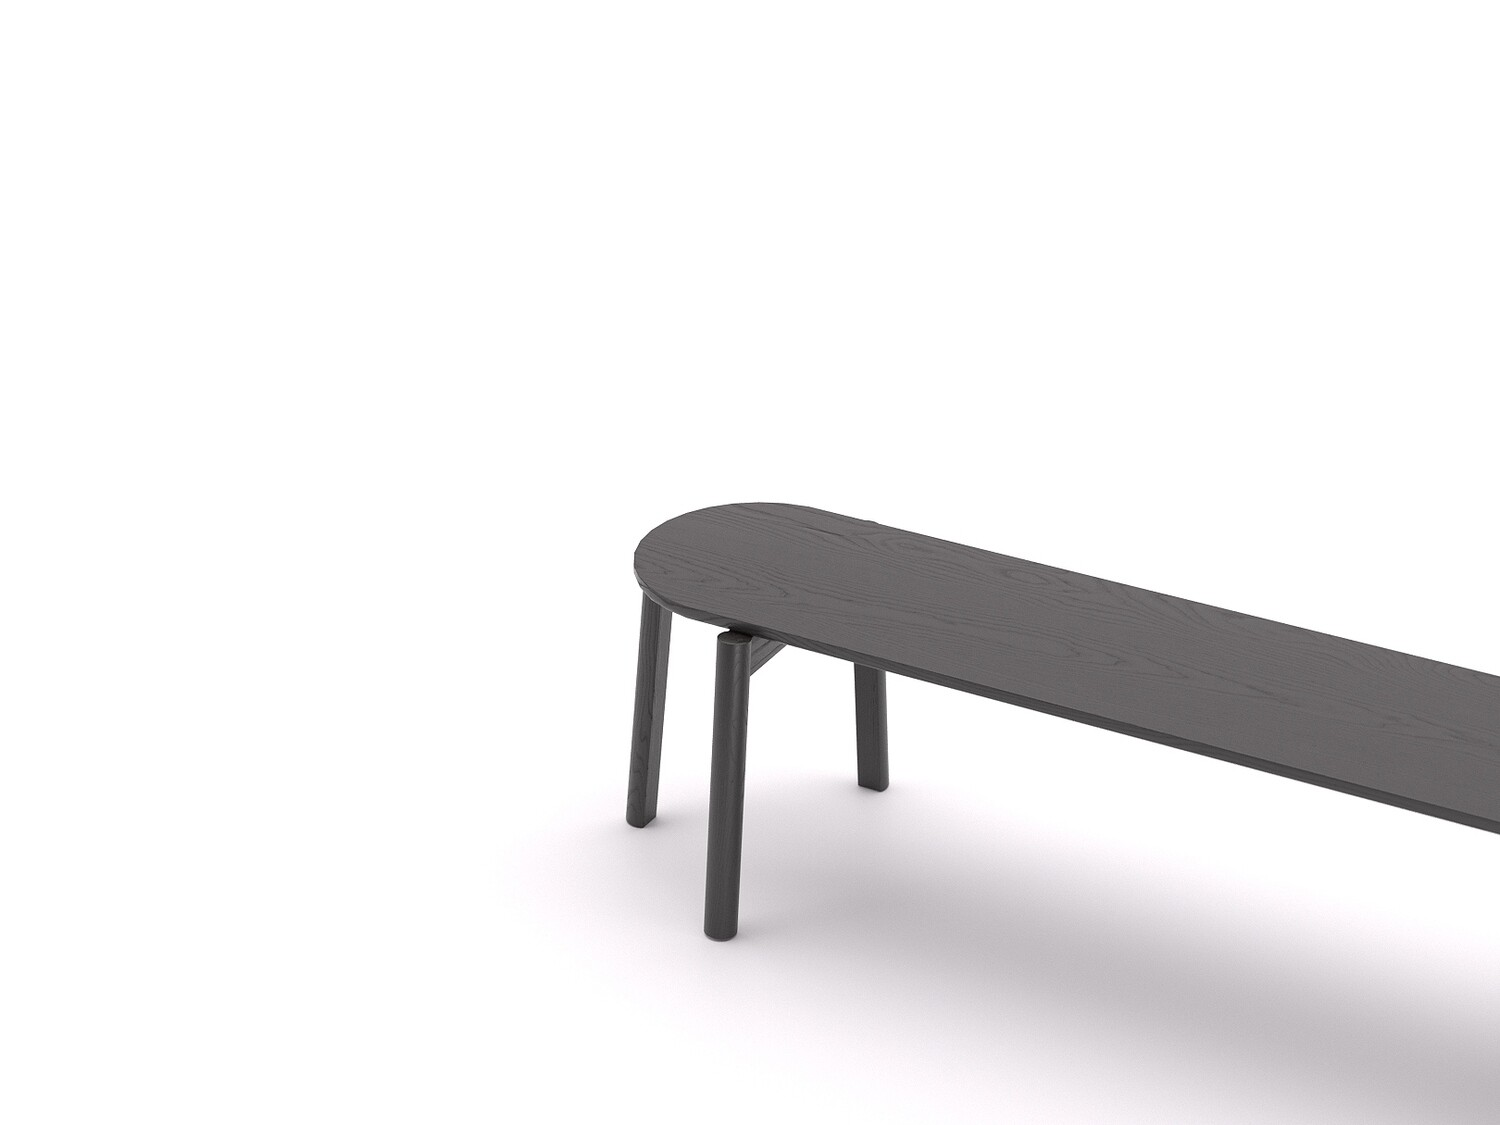 Oval dowel bench